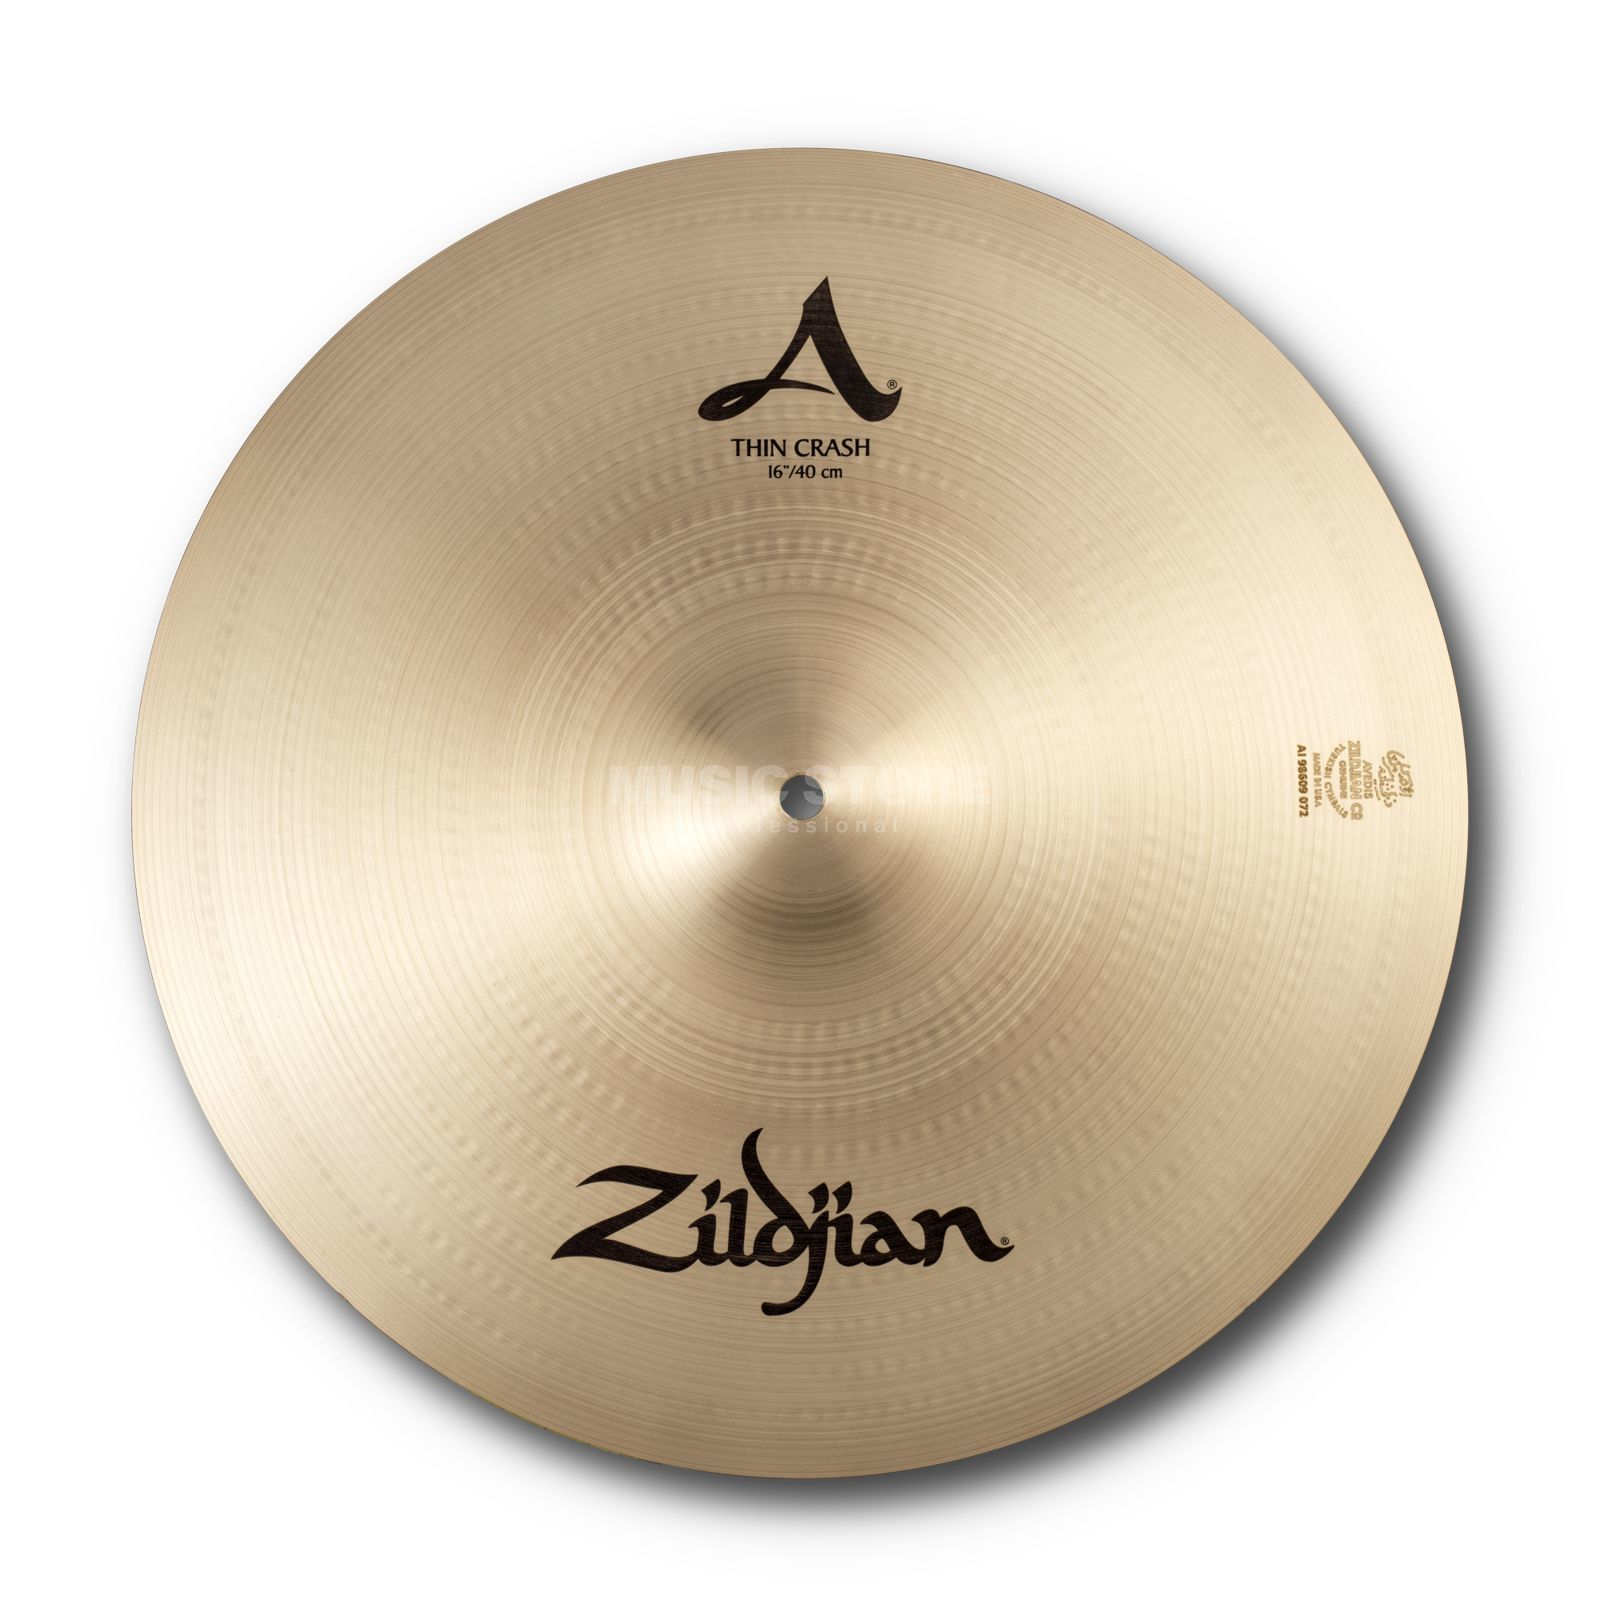 "Zildjian A' Zildjian Thin Crash 16"", Traditional Finish Product Image"